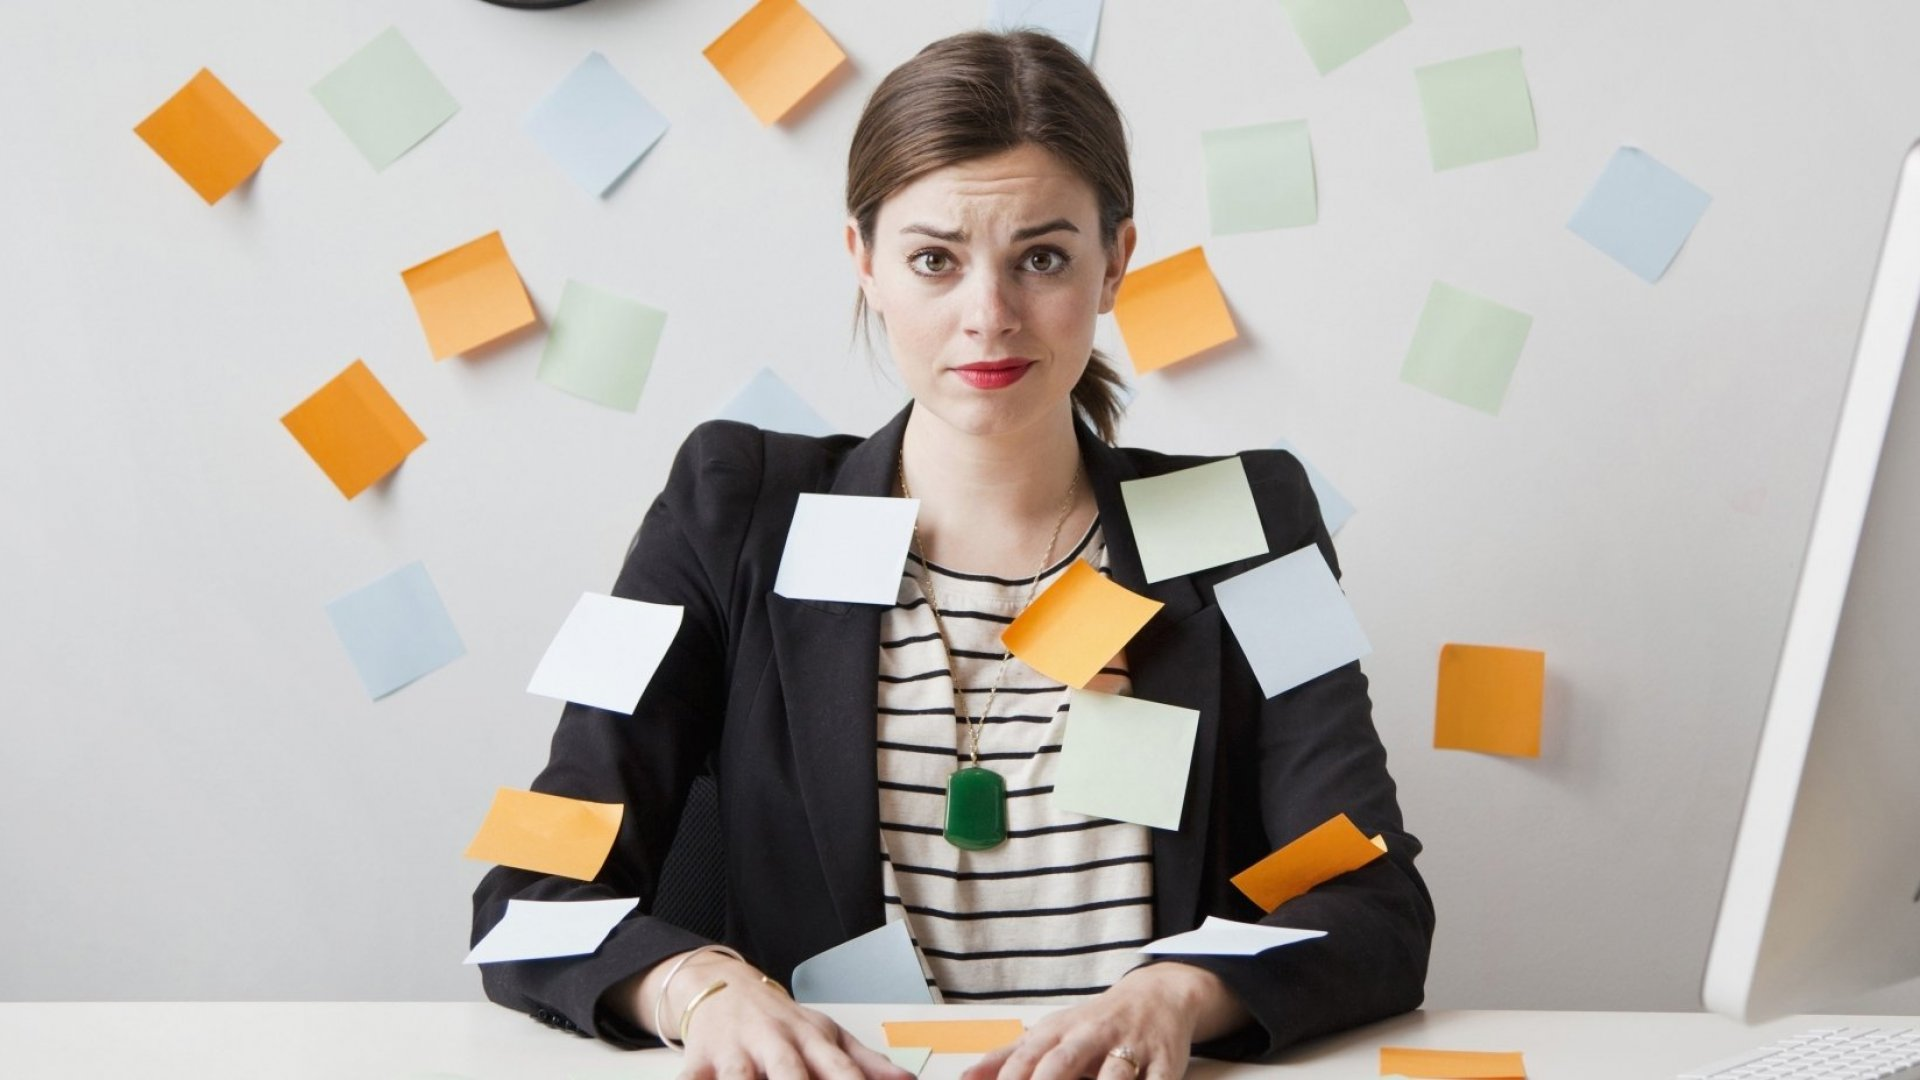 5 Signs You're Burnt Out andWhy You Need to Manage Stress